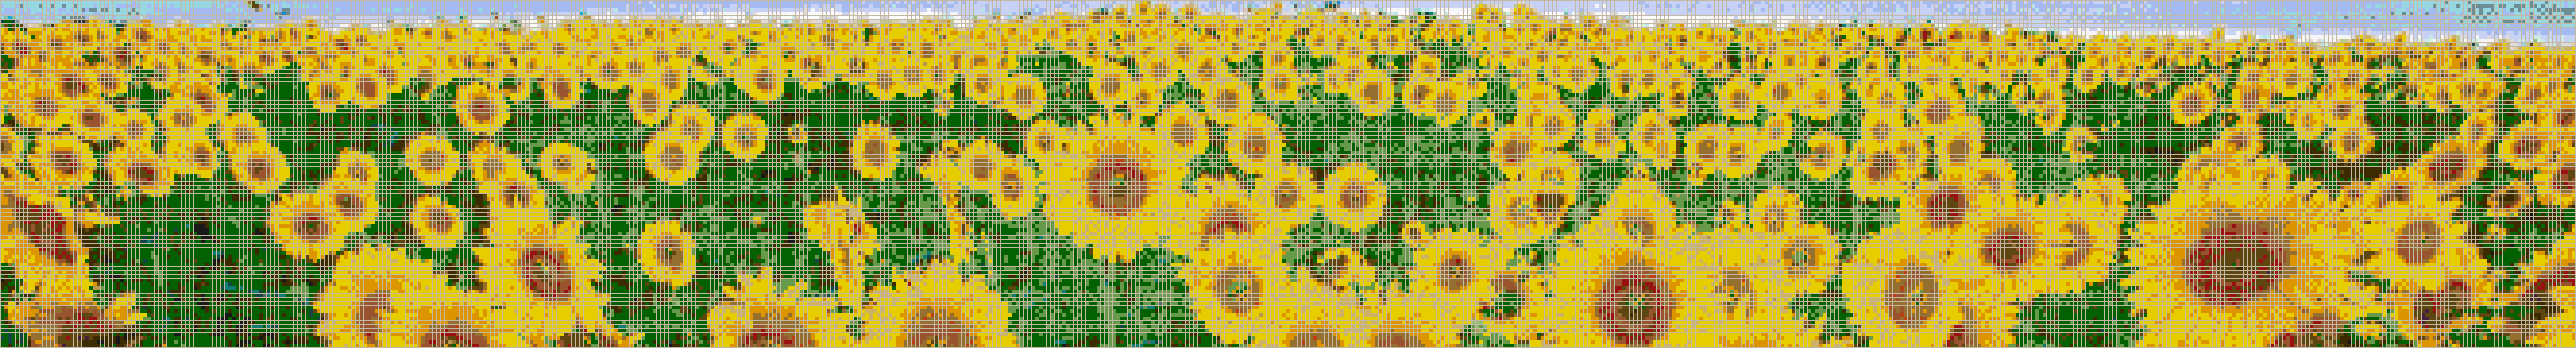 Sunflower Sky - Mosaic Tile Picture Art